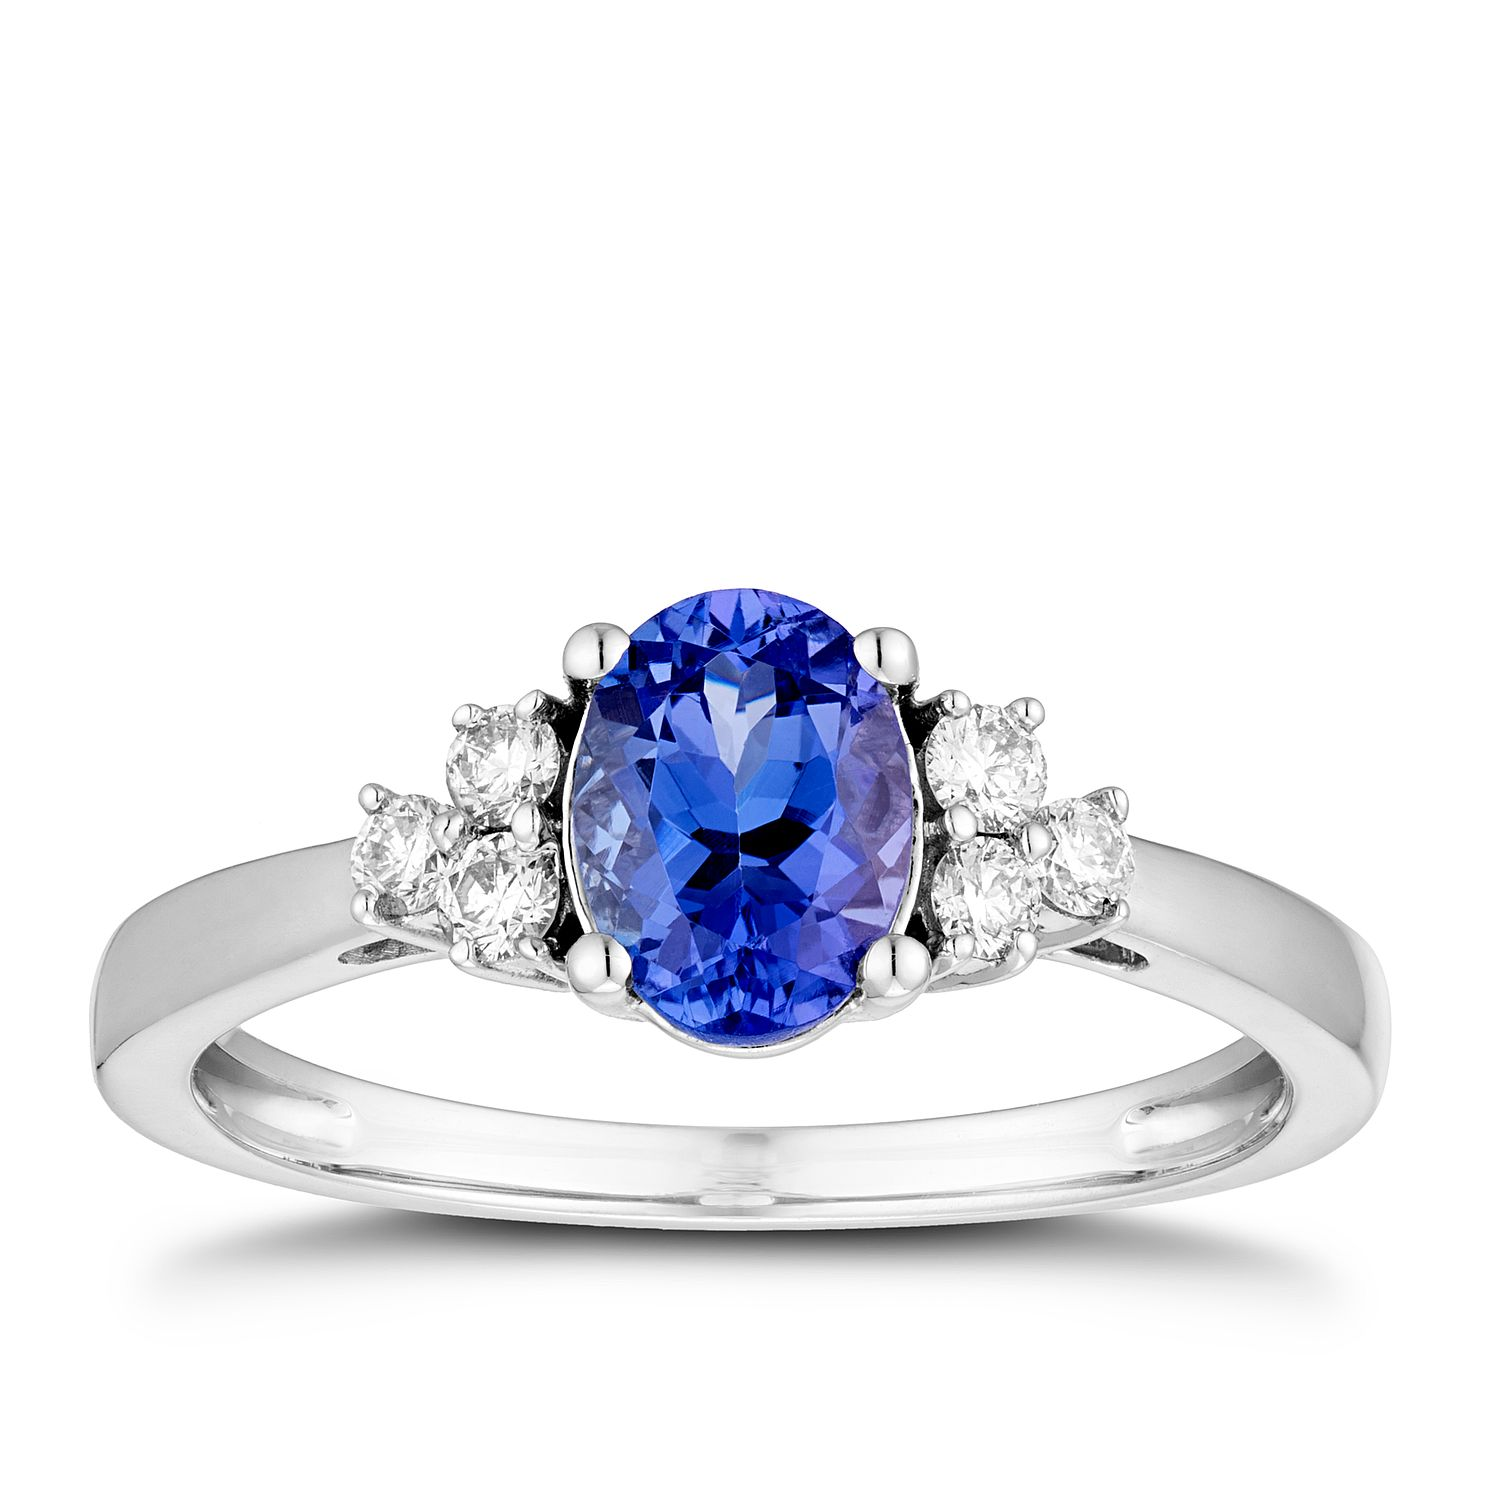 18ct White Gold Tanzanite & 0.16ct Diamond Ring - Product number 5963249